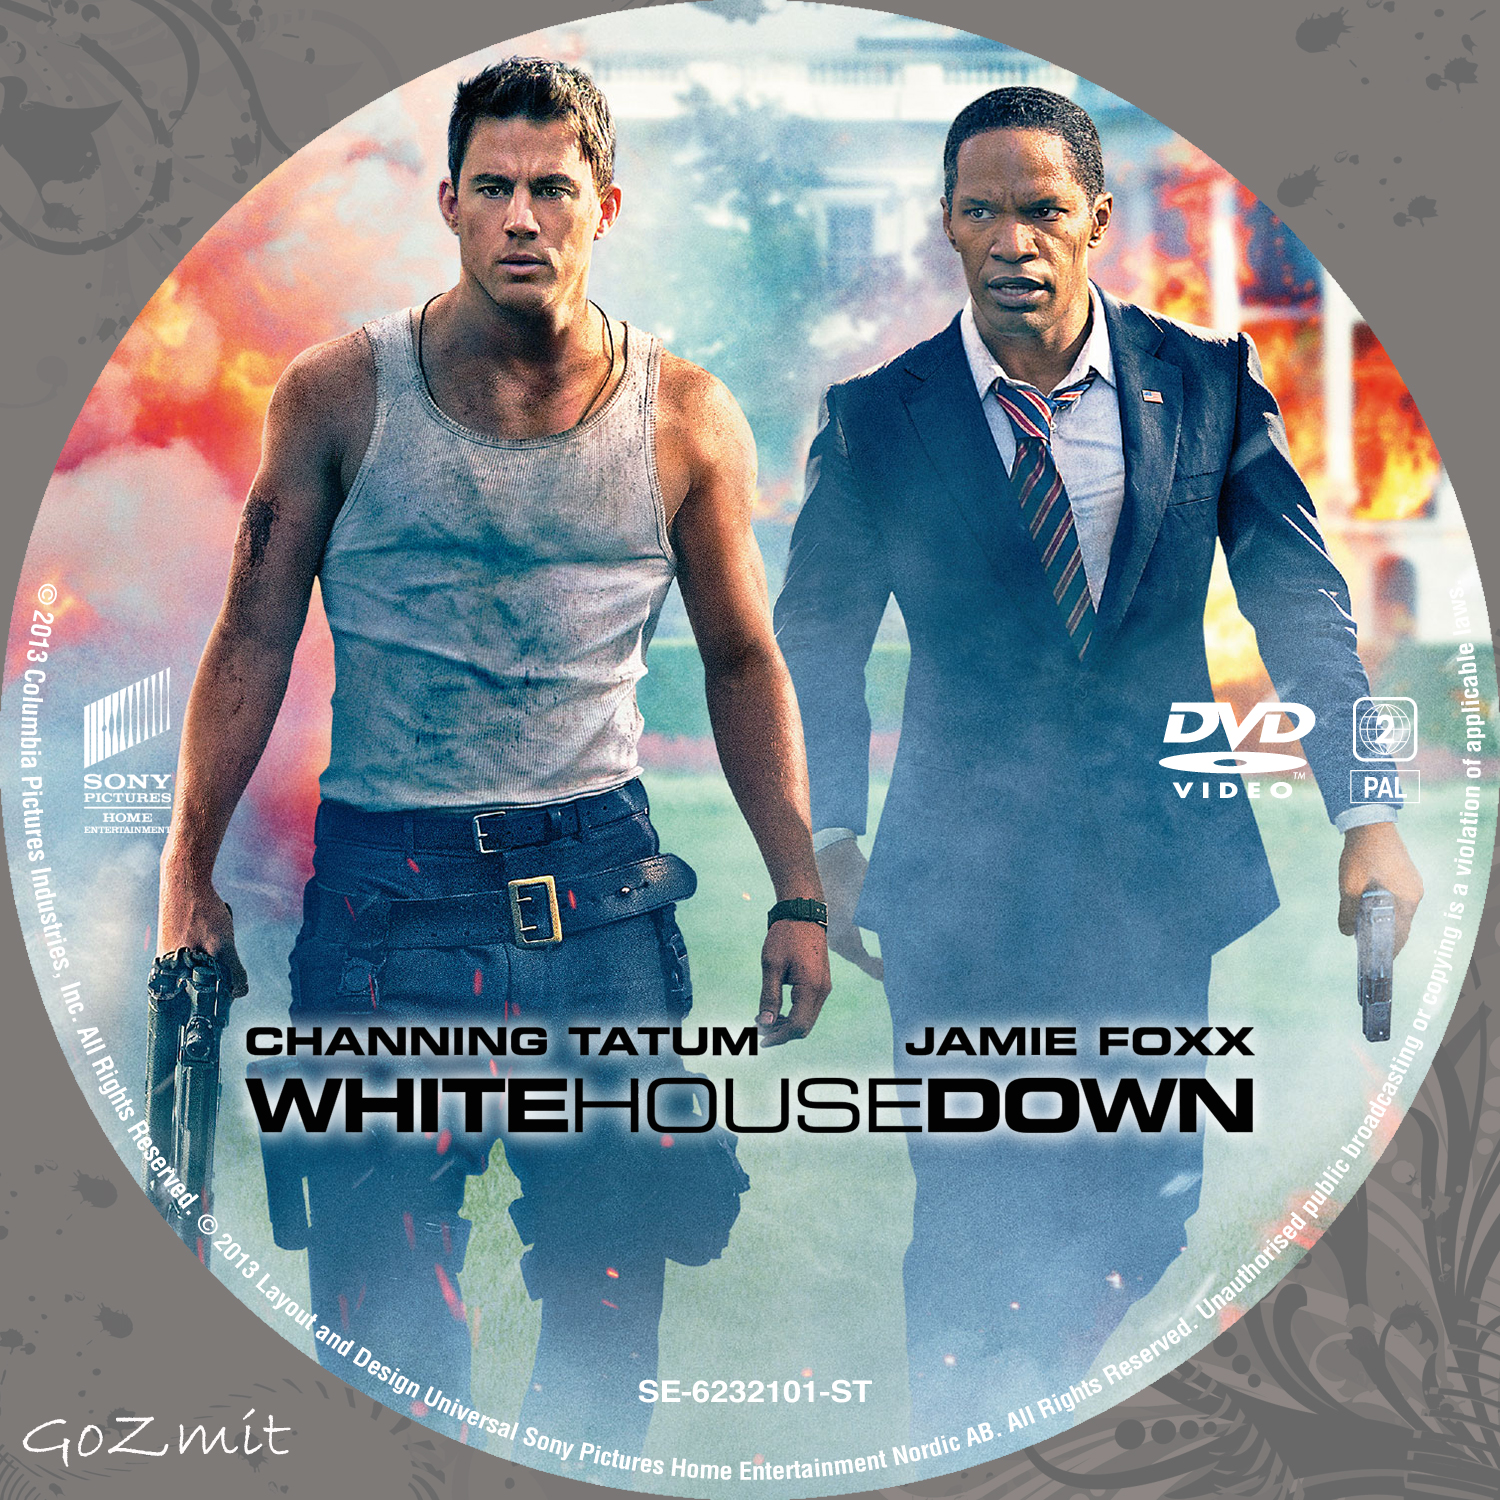 House Down Dvd Cover